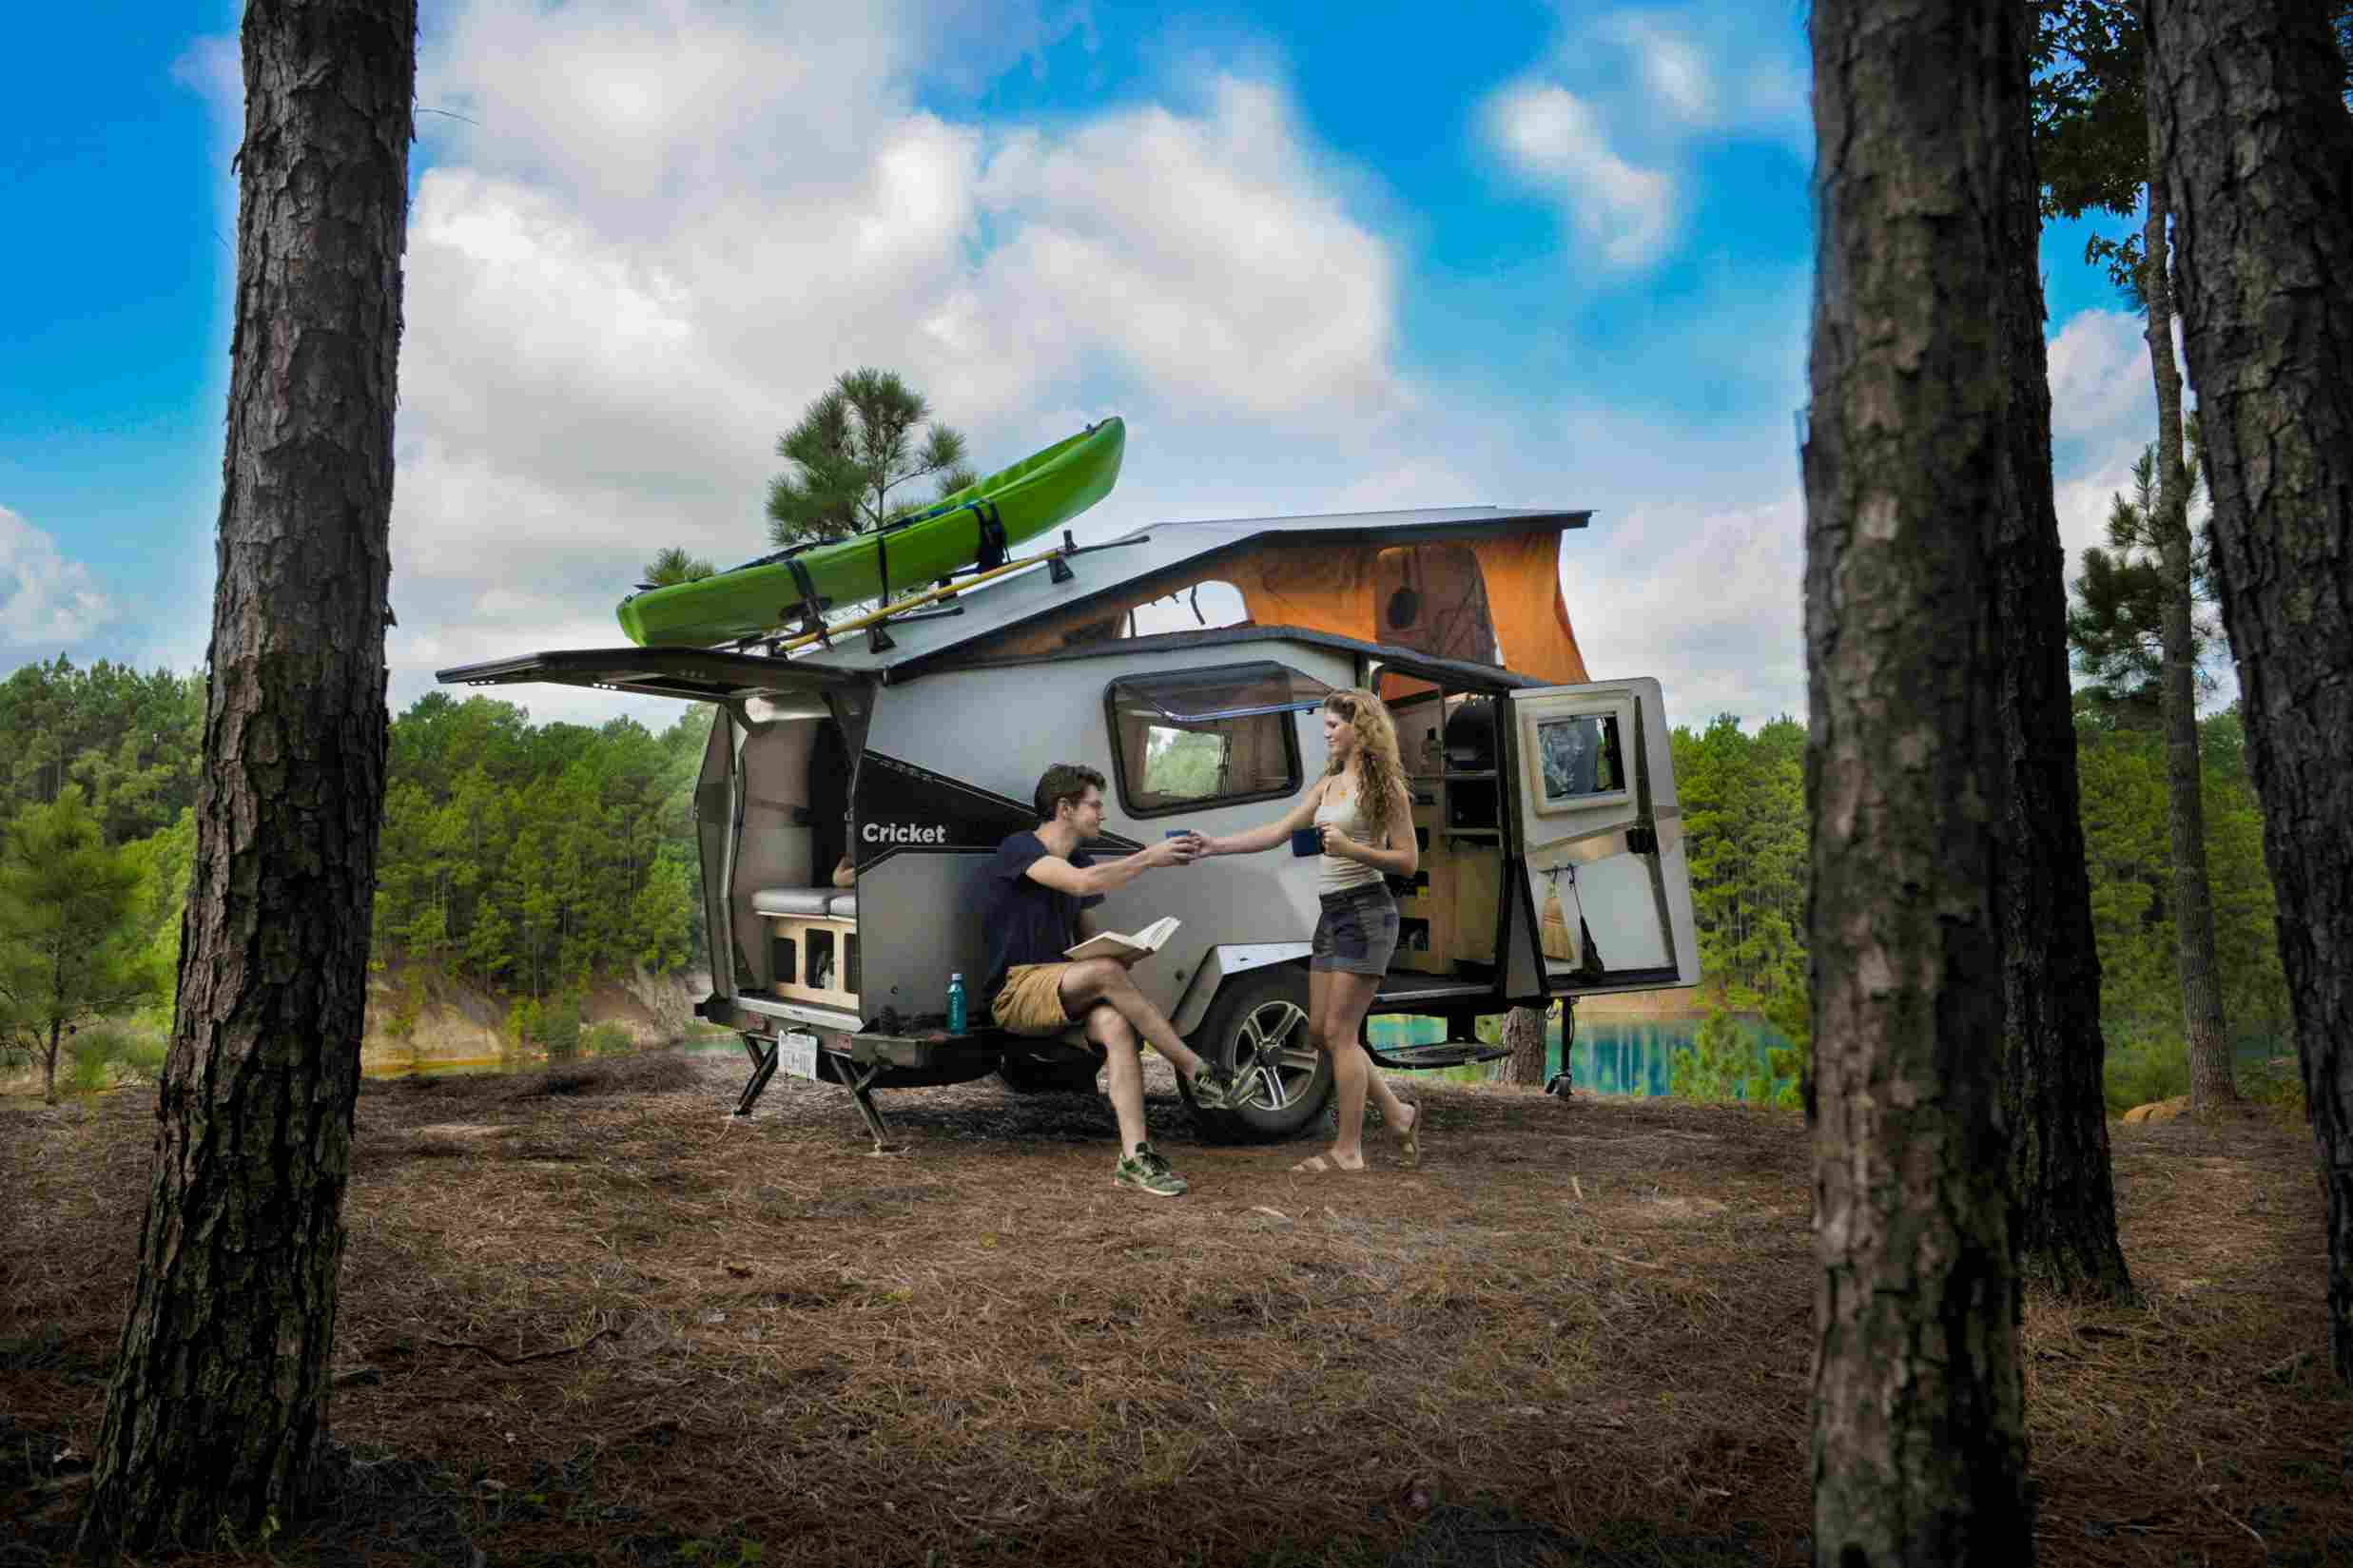 8 Best Small Camper Trailers Small Rv Mobile Homes Inside on rv storage inside, rv campers inside, rv trailers inside, rv rentals inside, rv houses inside, rv with car inside, rv motorhomes inside, rv camping inside,